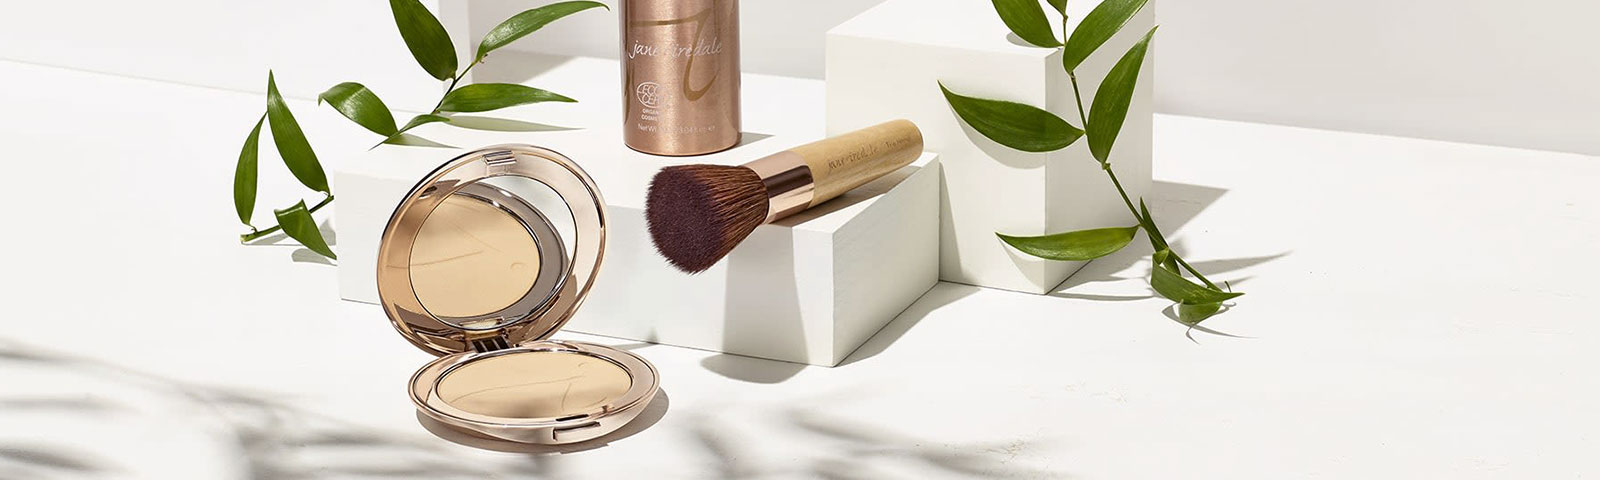 Jane Iredale - Make-up